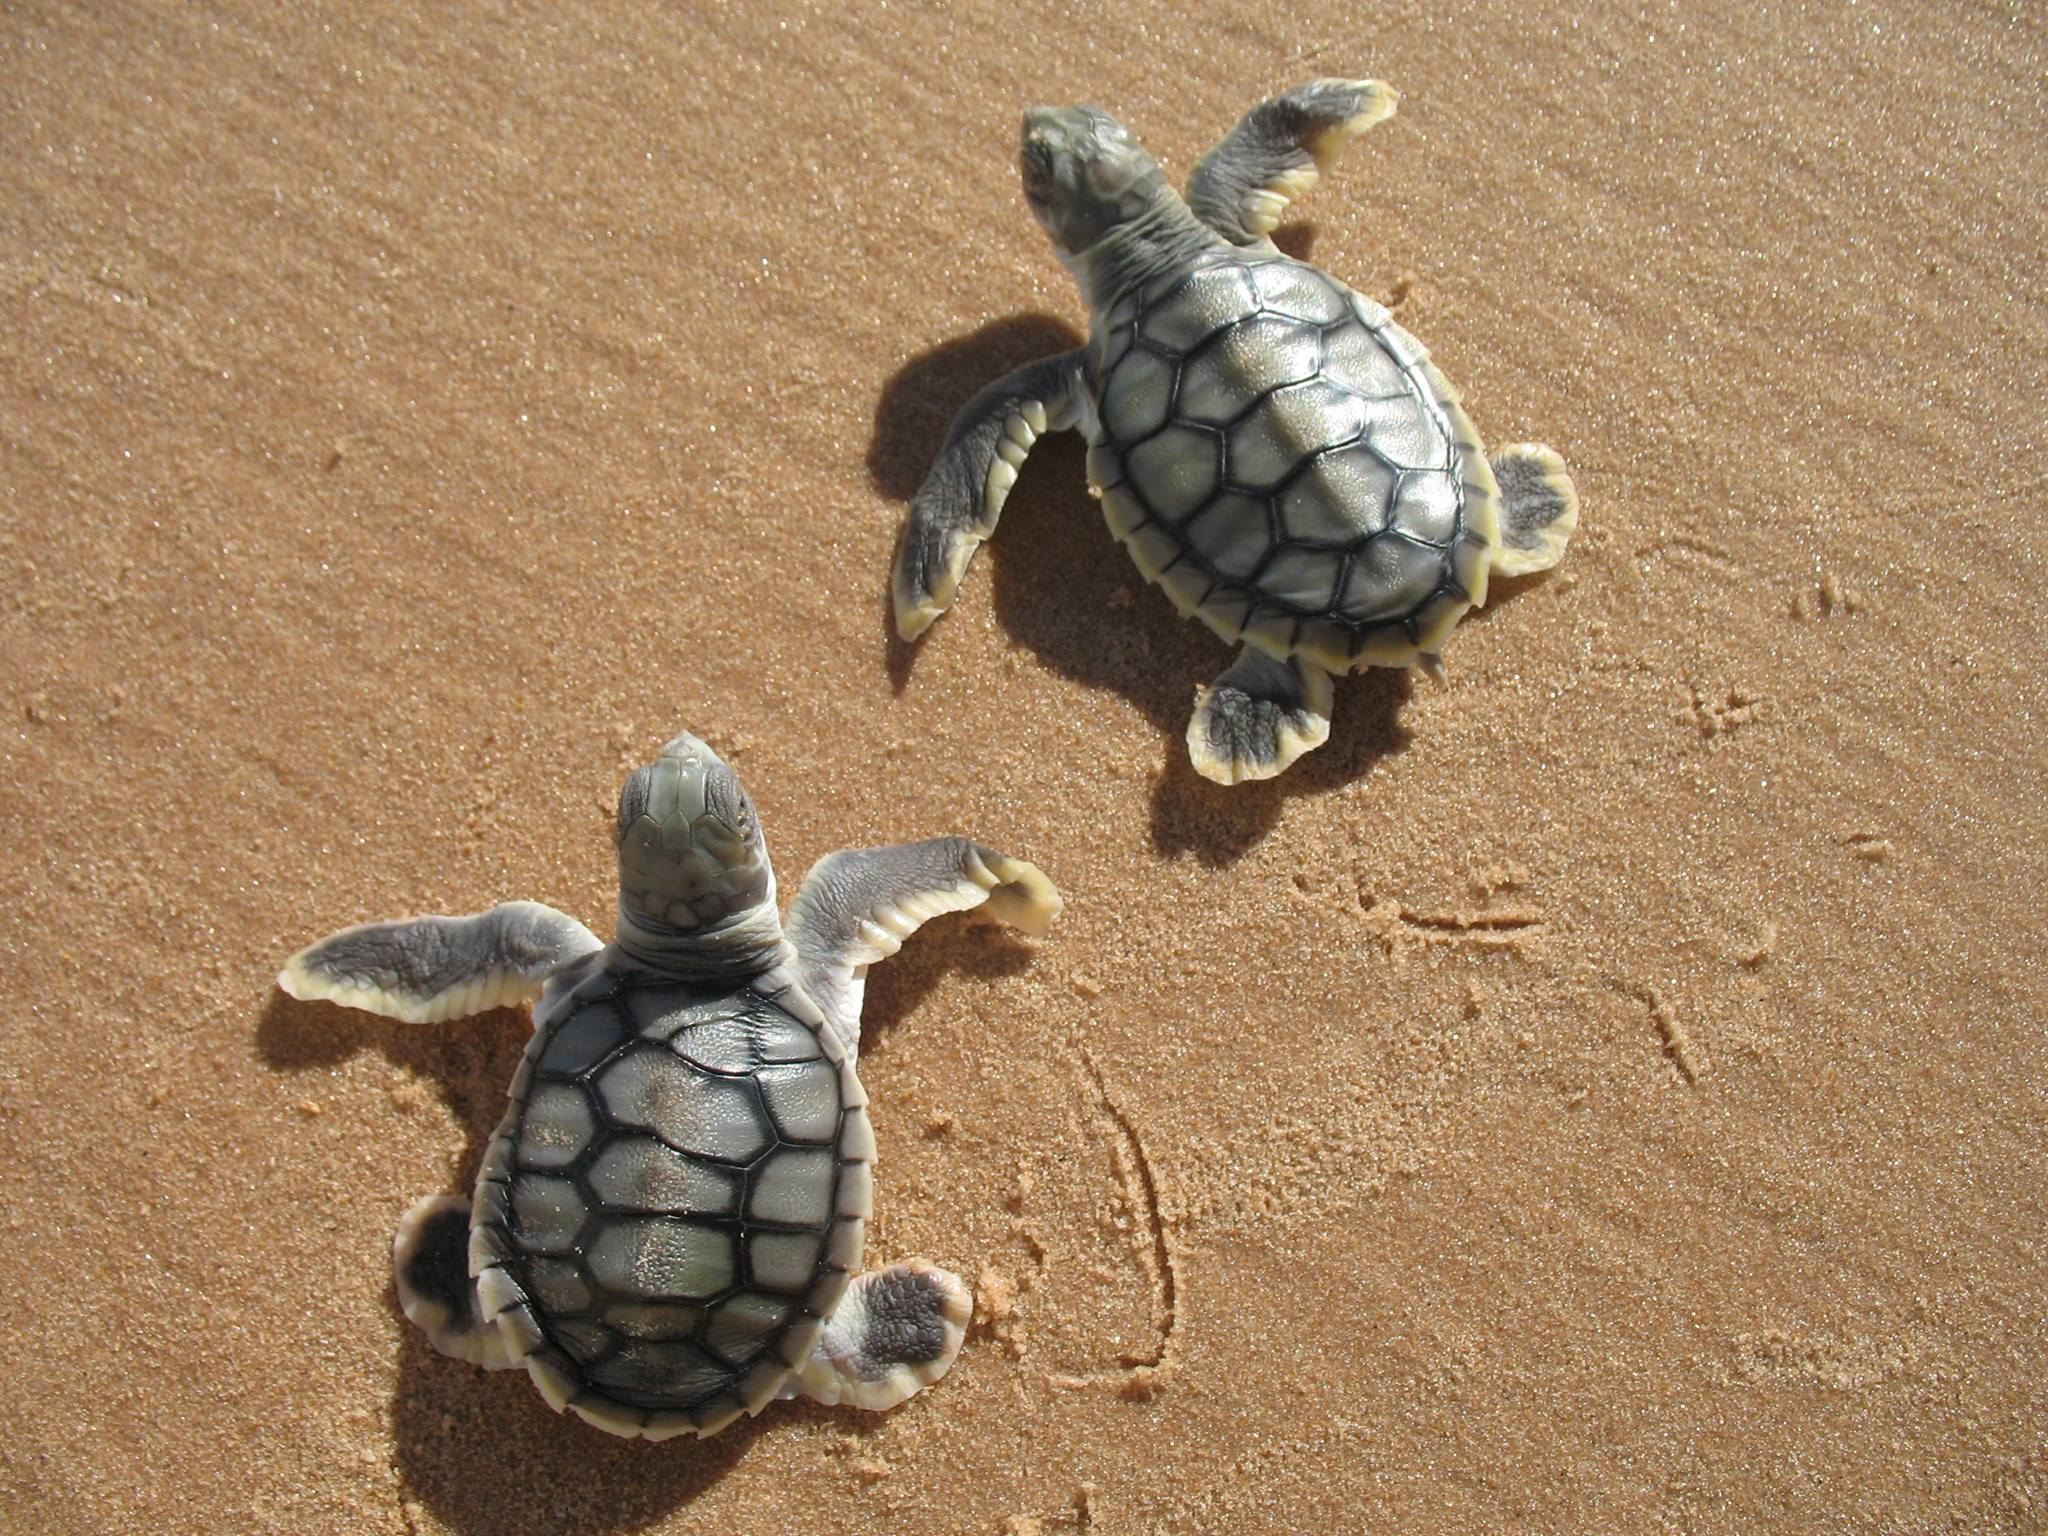 See turtles nesting on the beach - Photo credit: Dept. Parks & Wildlife